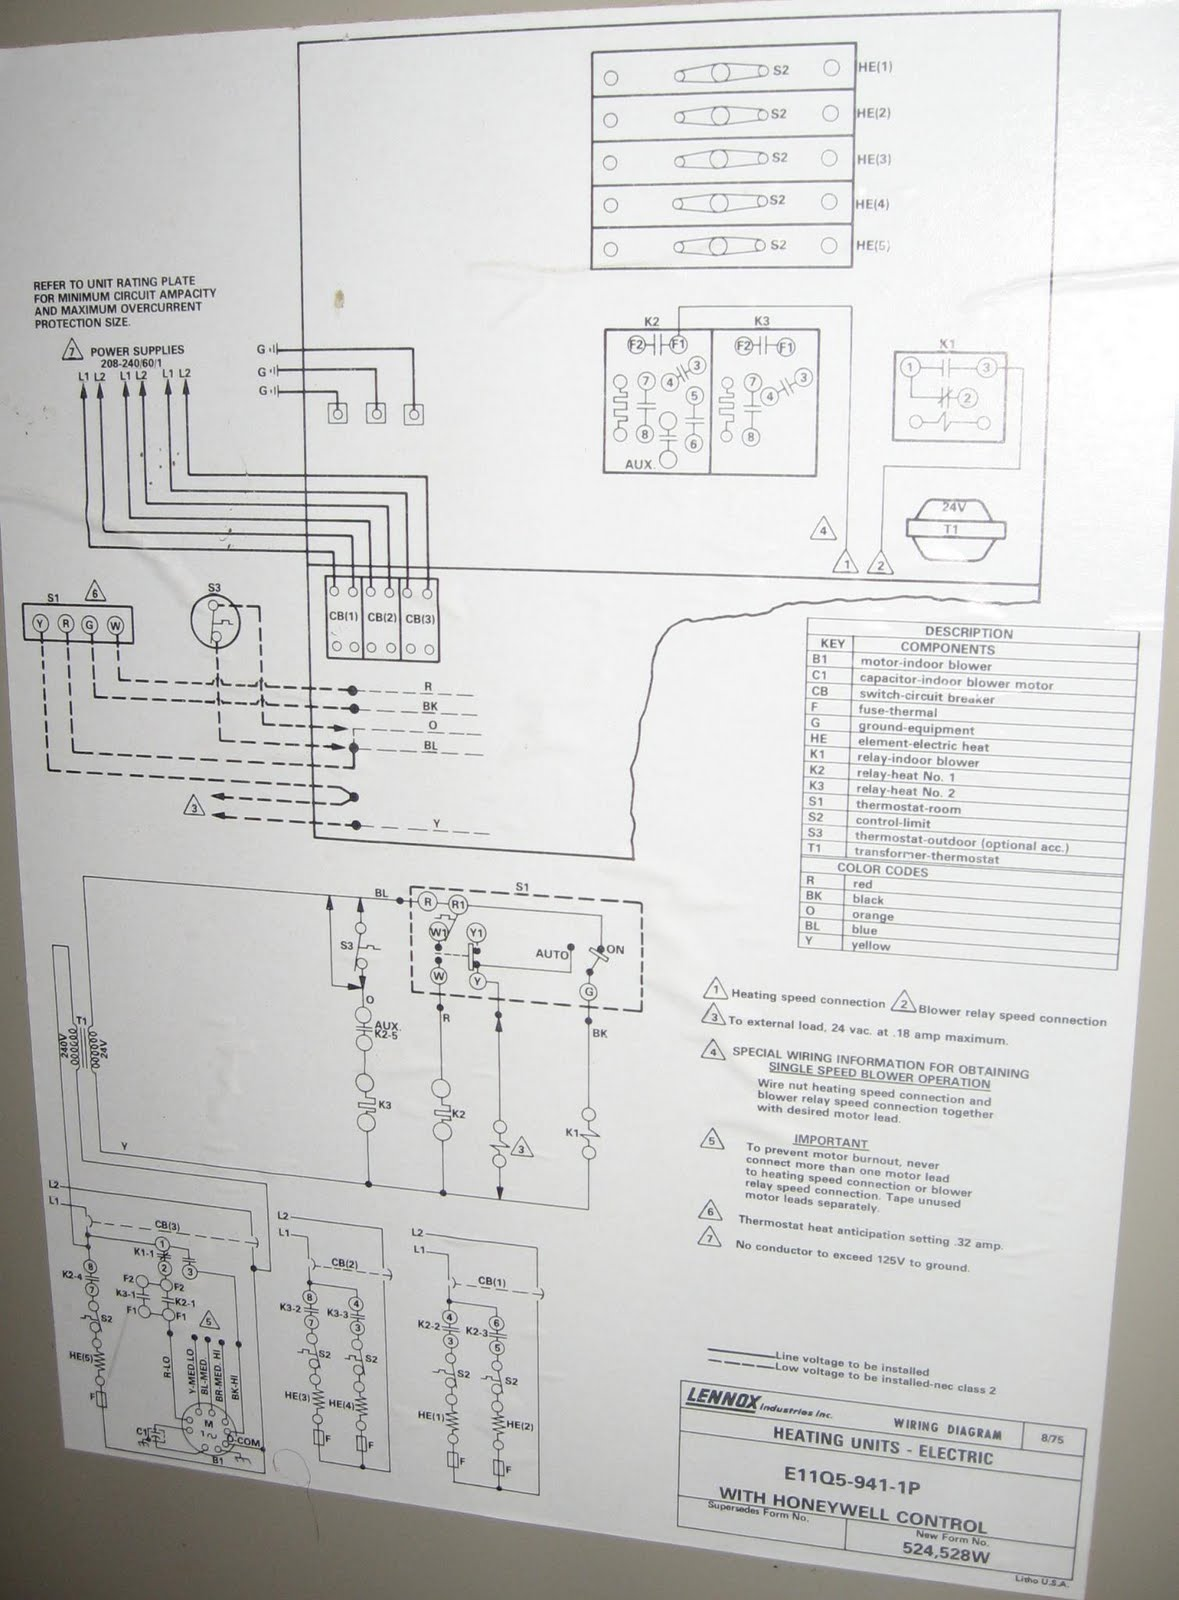 Lennox Wiring sustainability starts at home original electric furnace lennox furnace wiring diagram at n-0.co